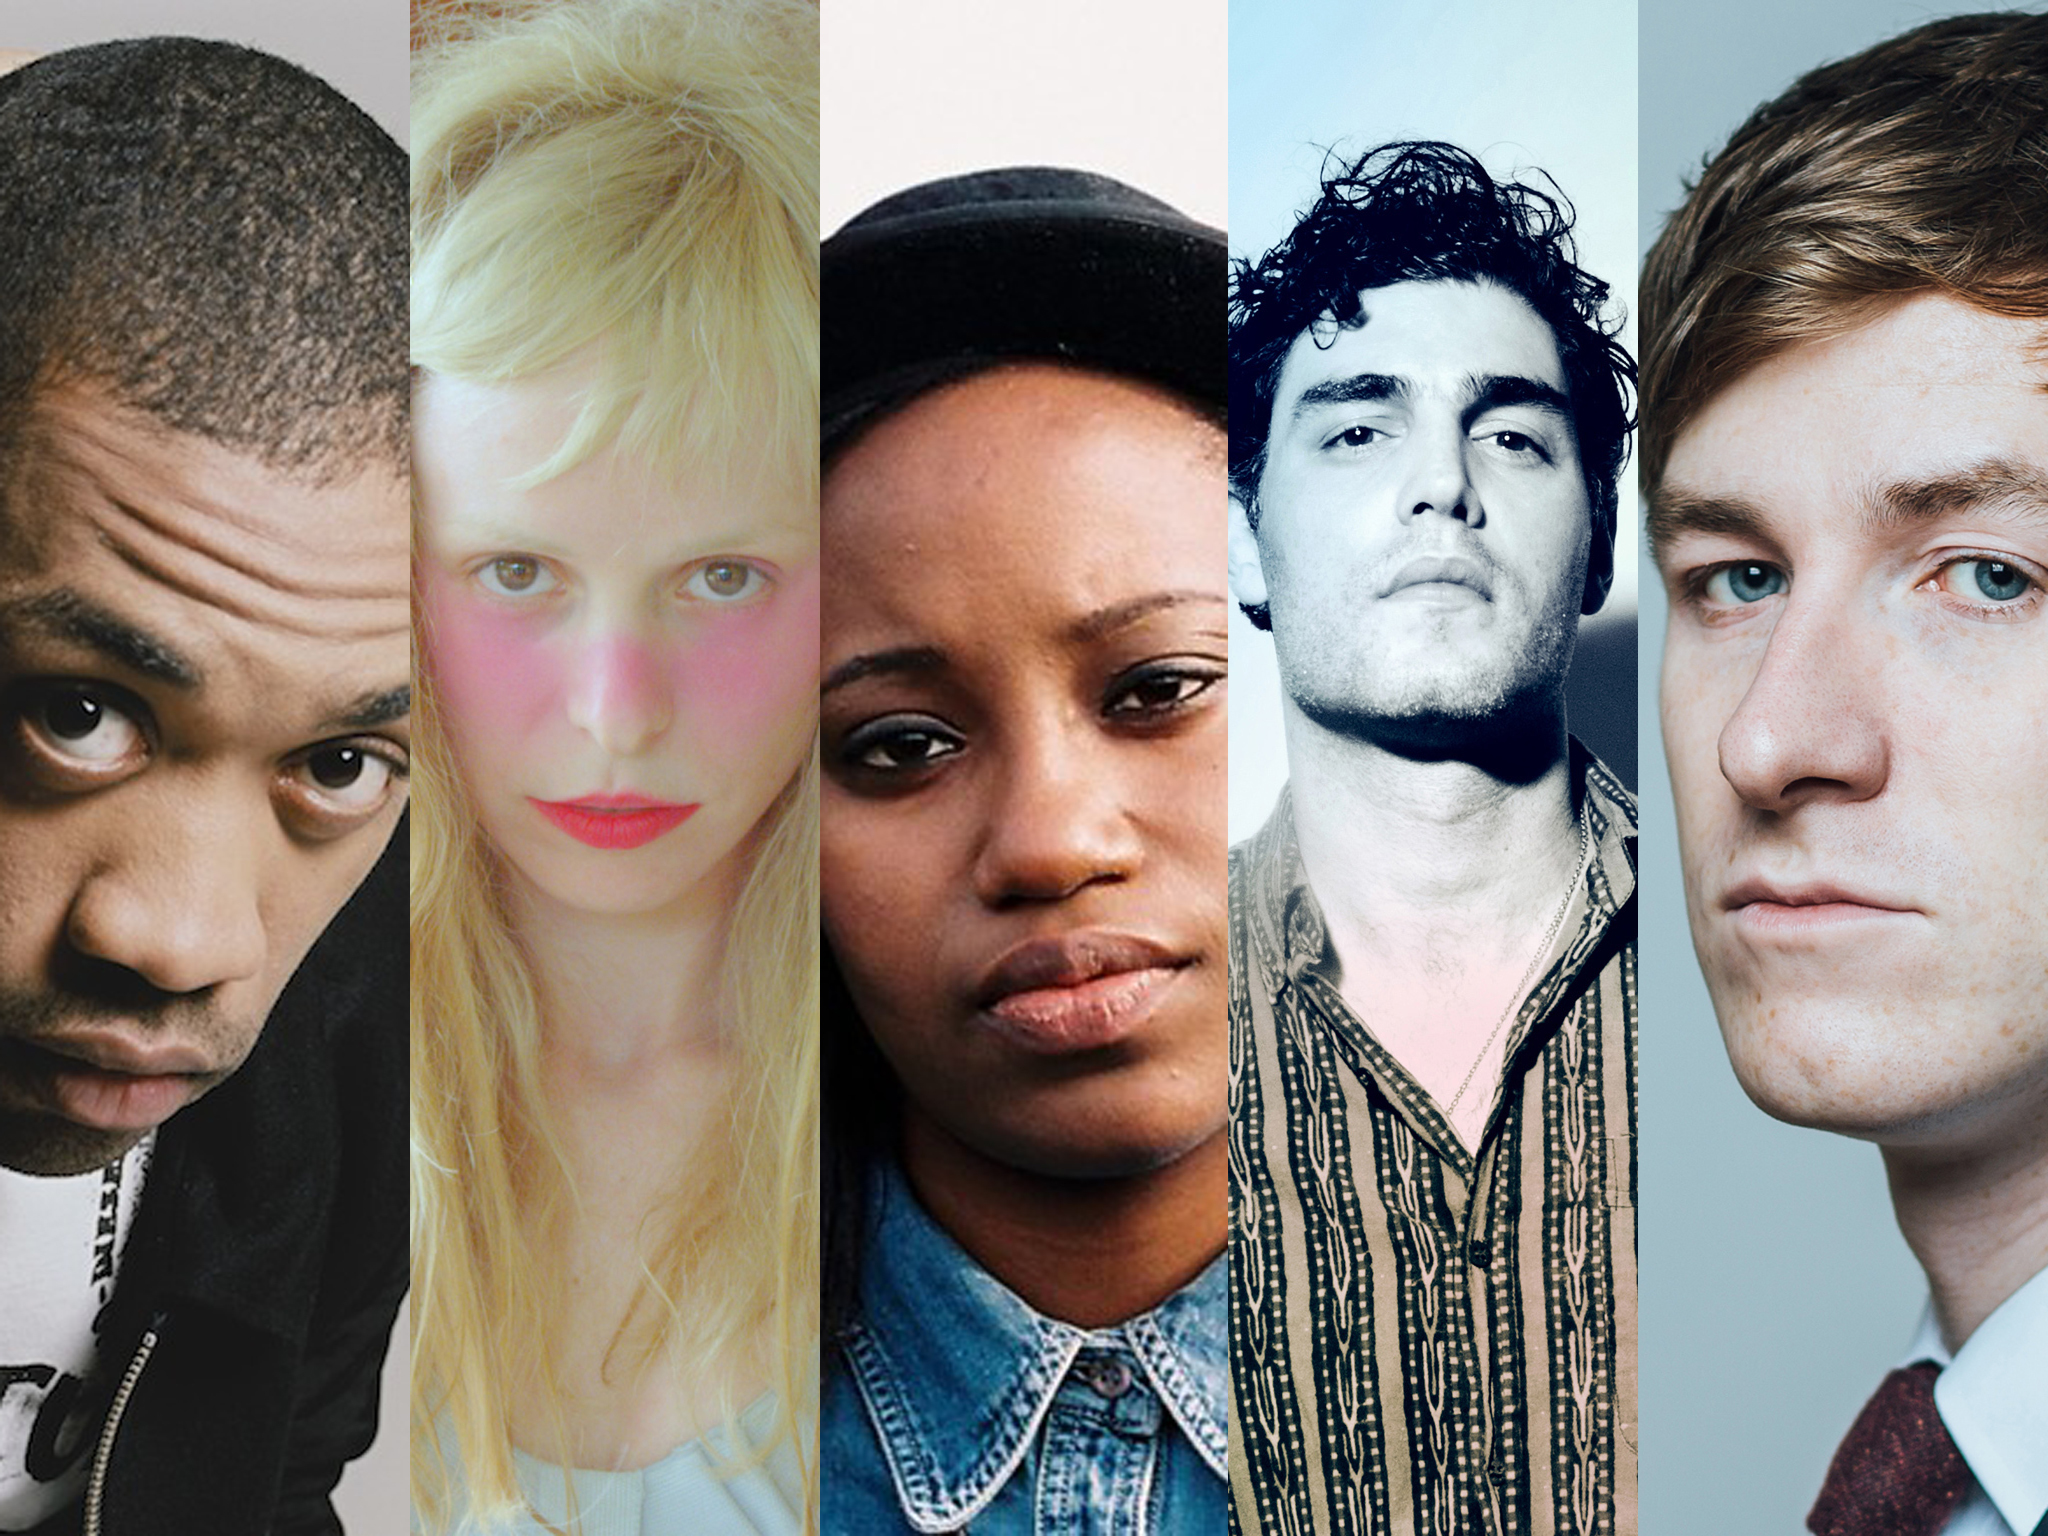 The 50 best songs of 2015 so far